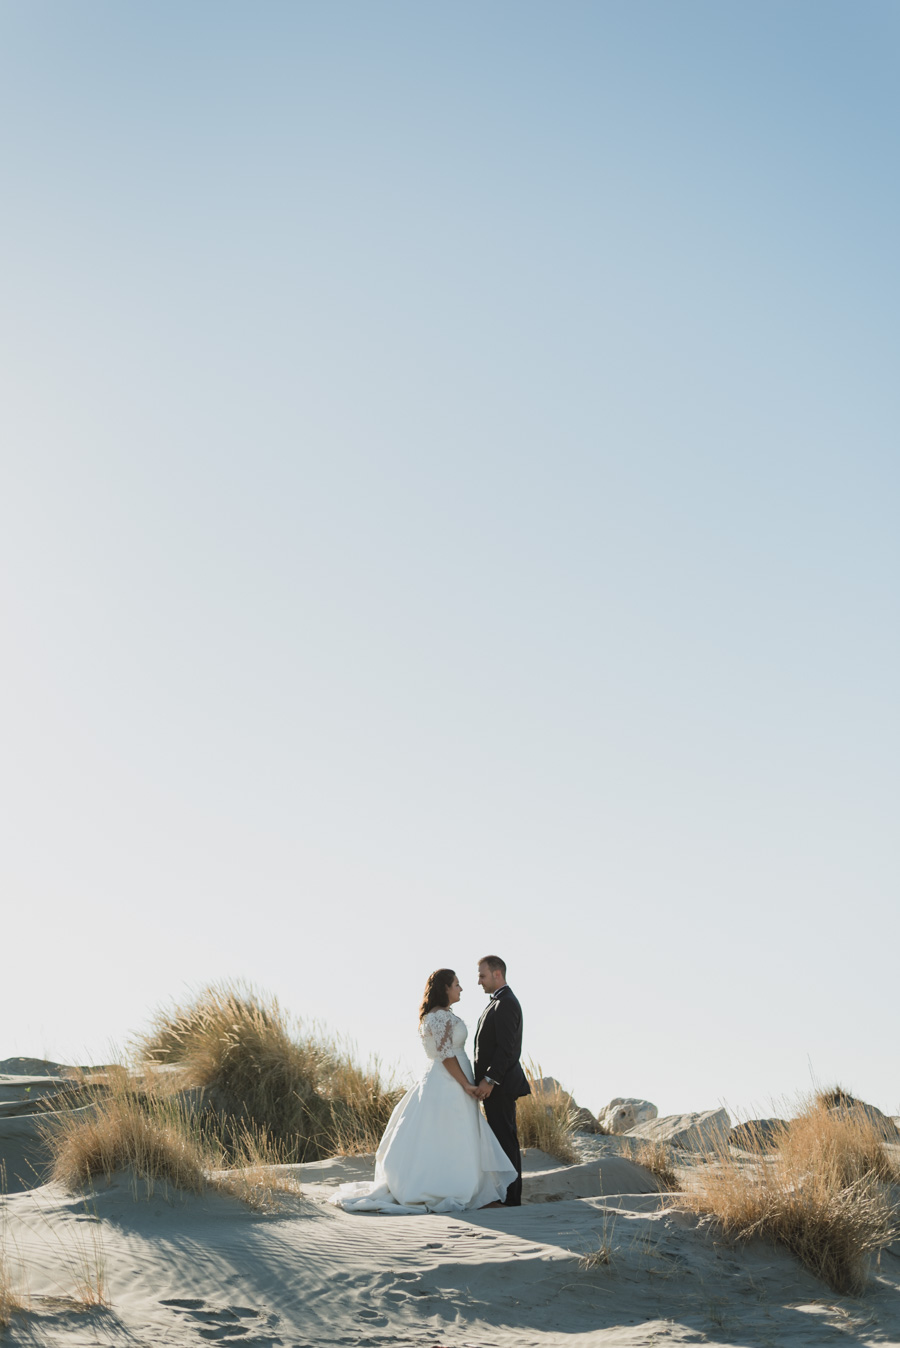 trash the dress photo couple plage mer